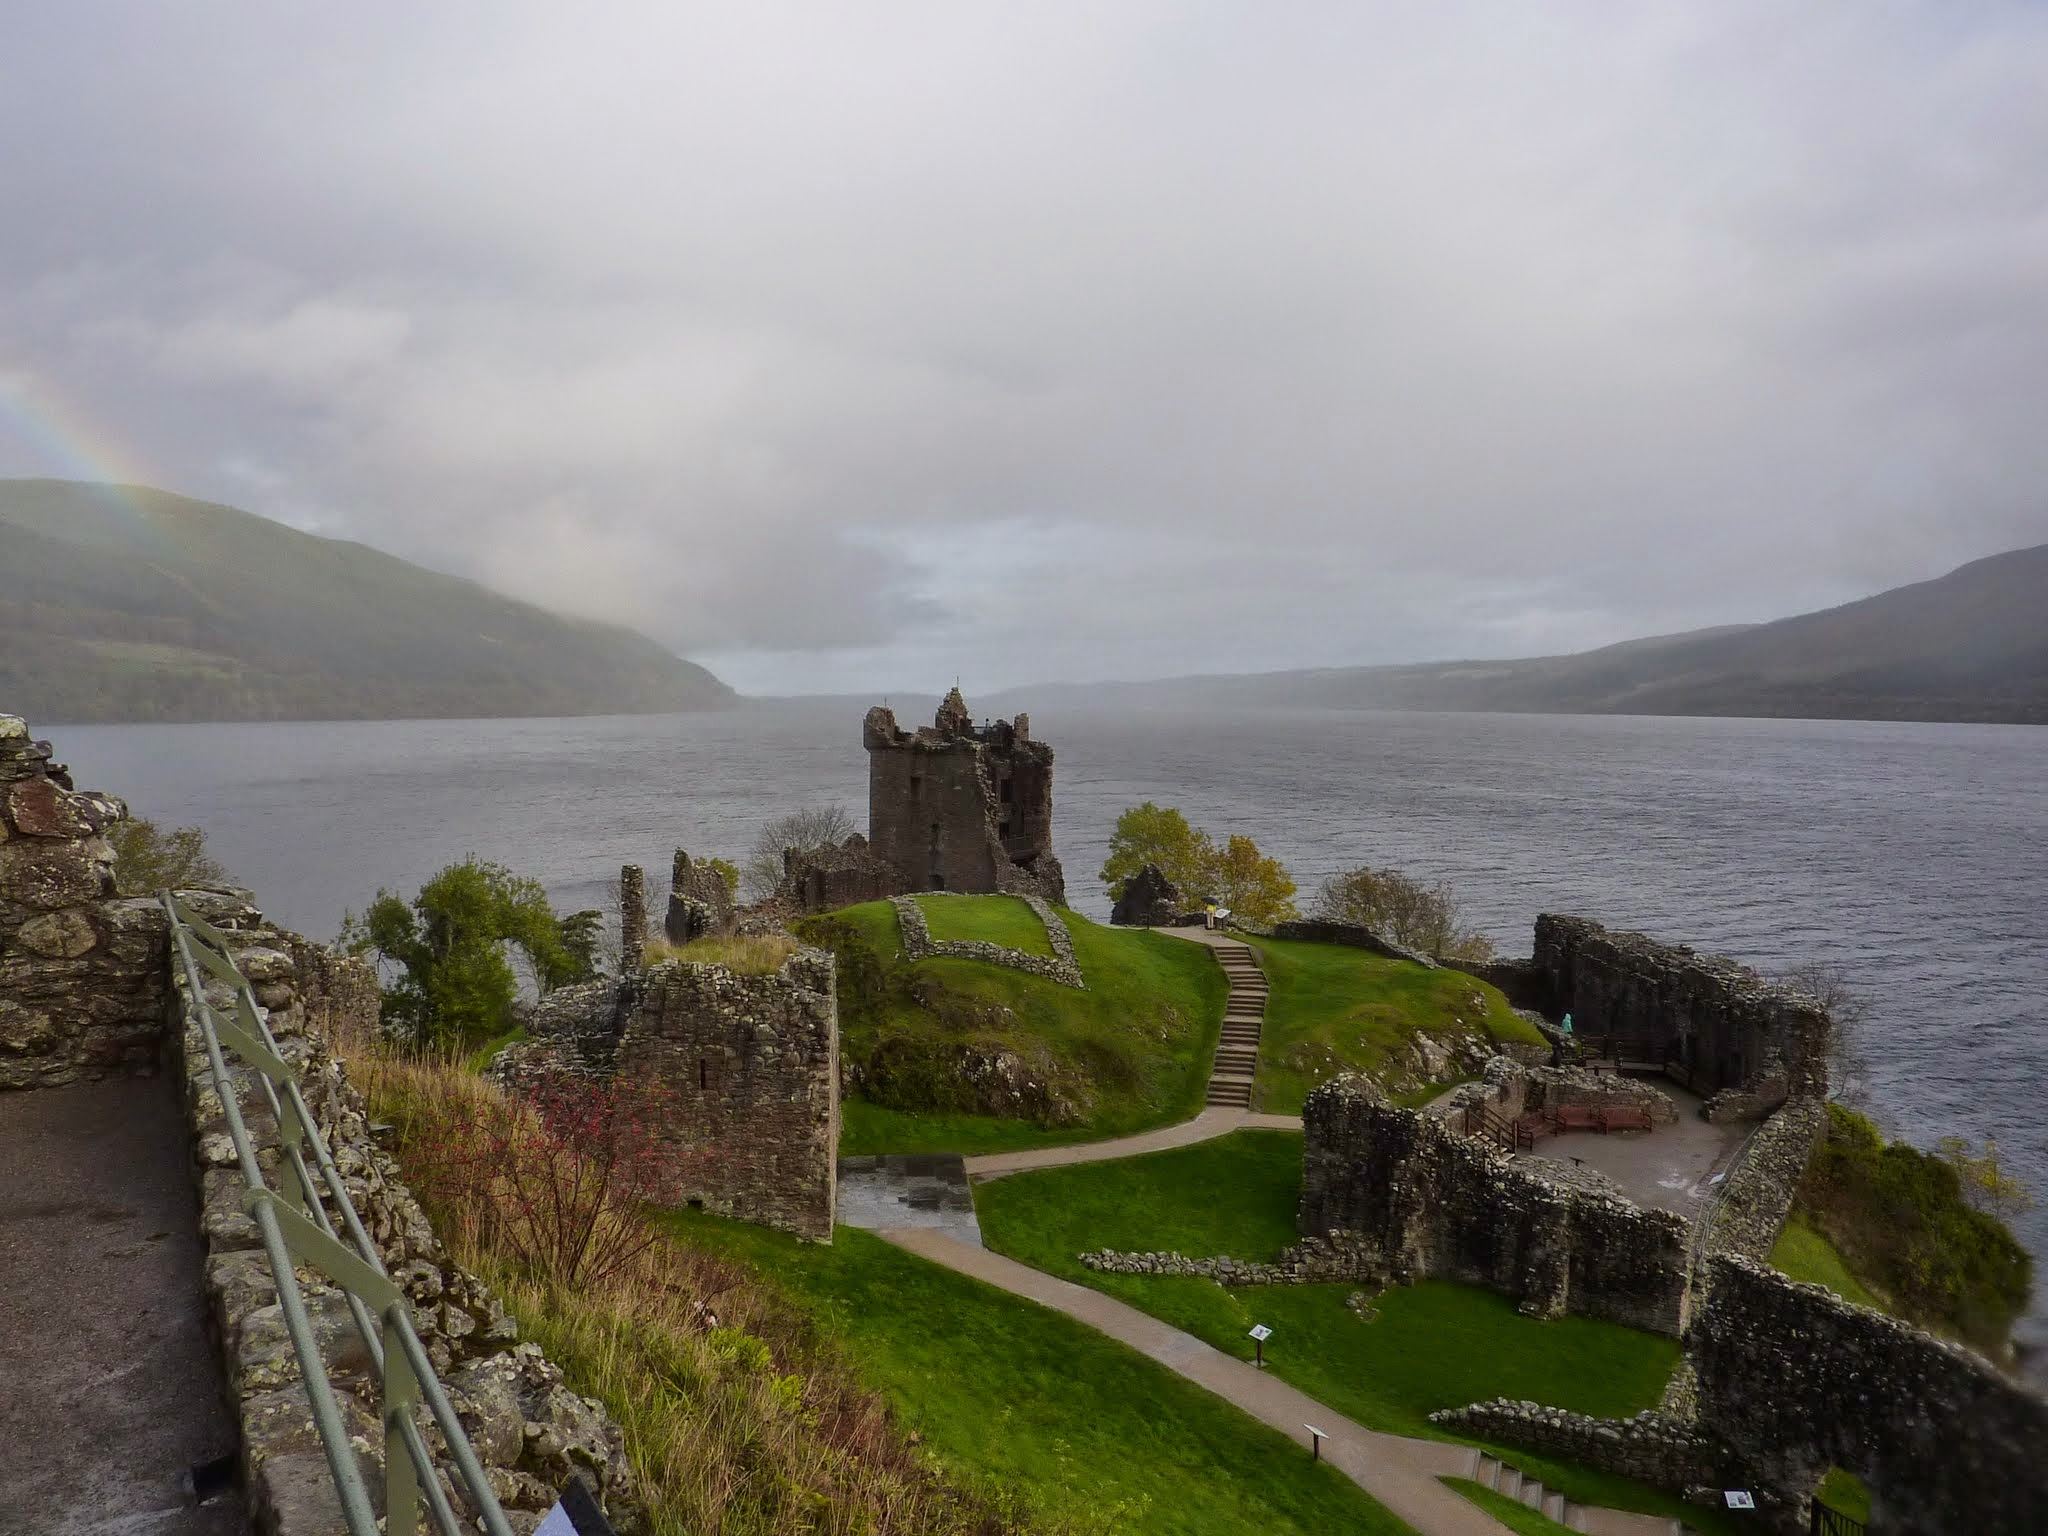 Loch Ness, Scotland: Urquhart Castle | Diverting Journeys